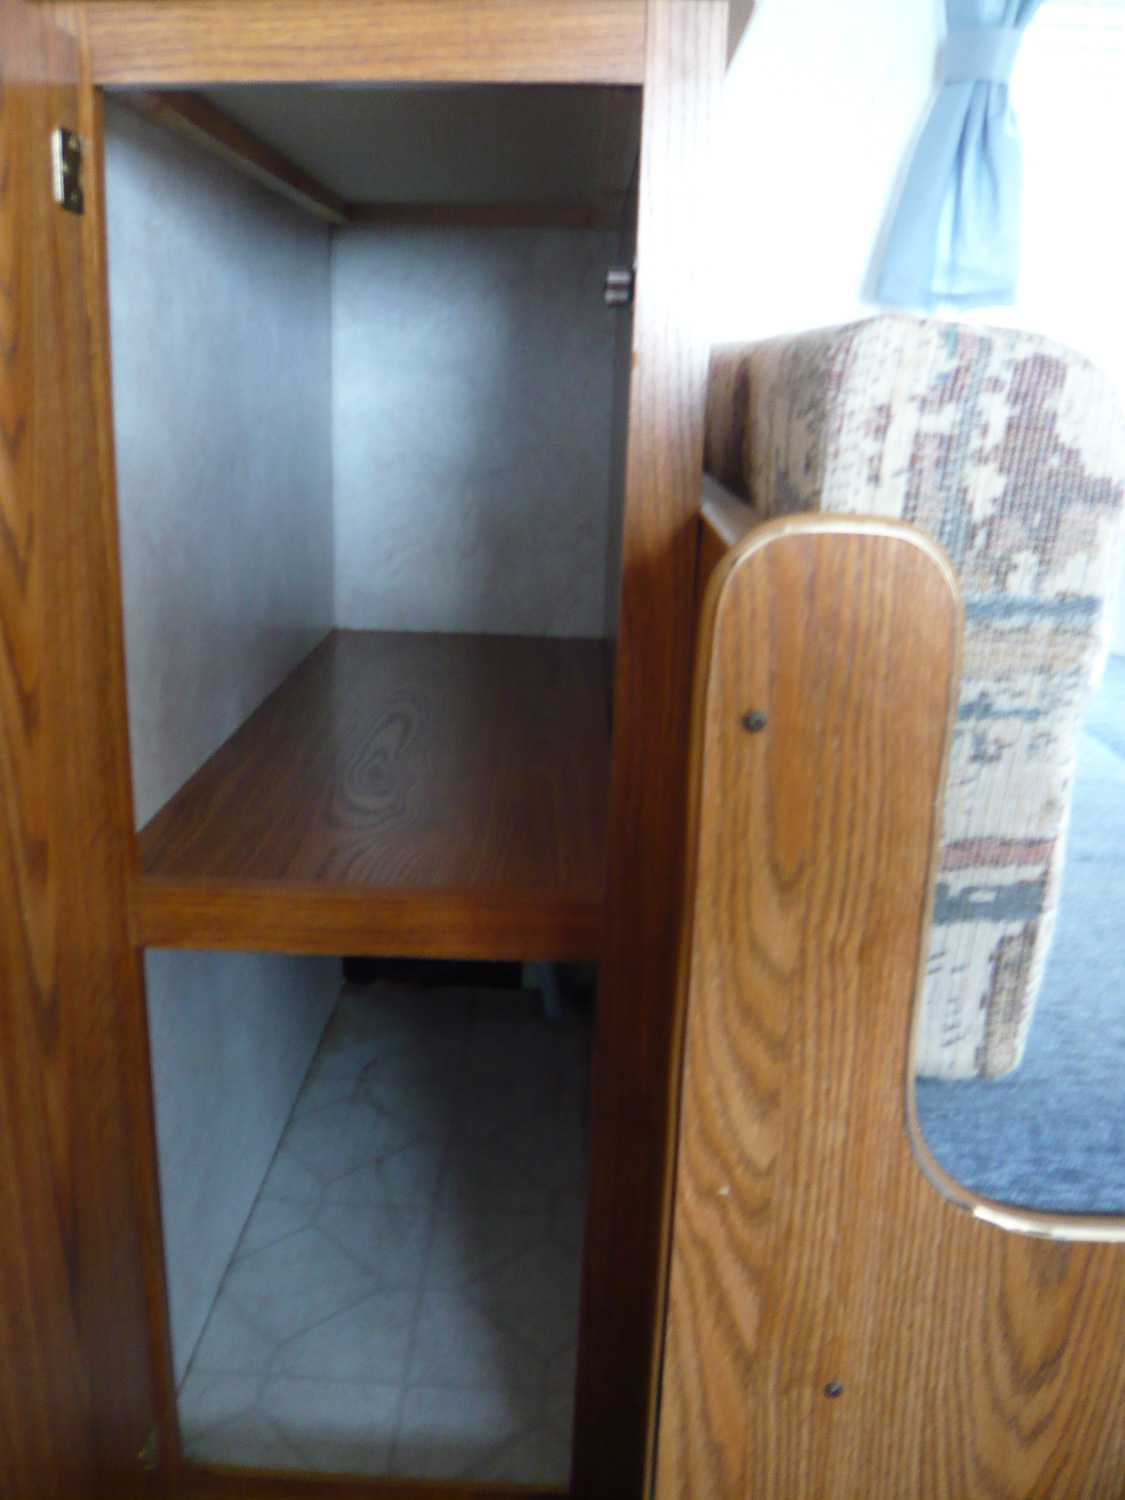 We have a pantry behind one of the dinette seats.